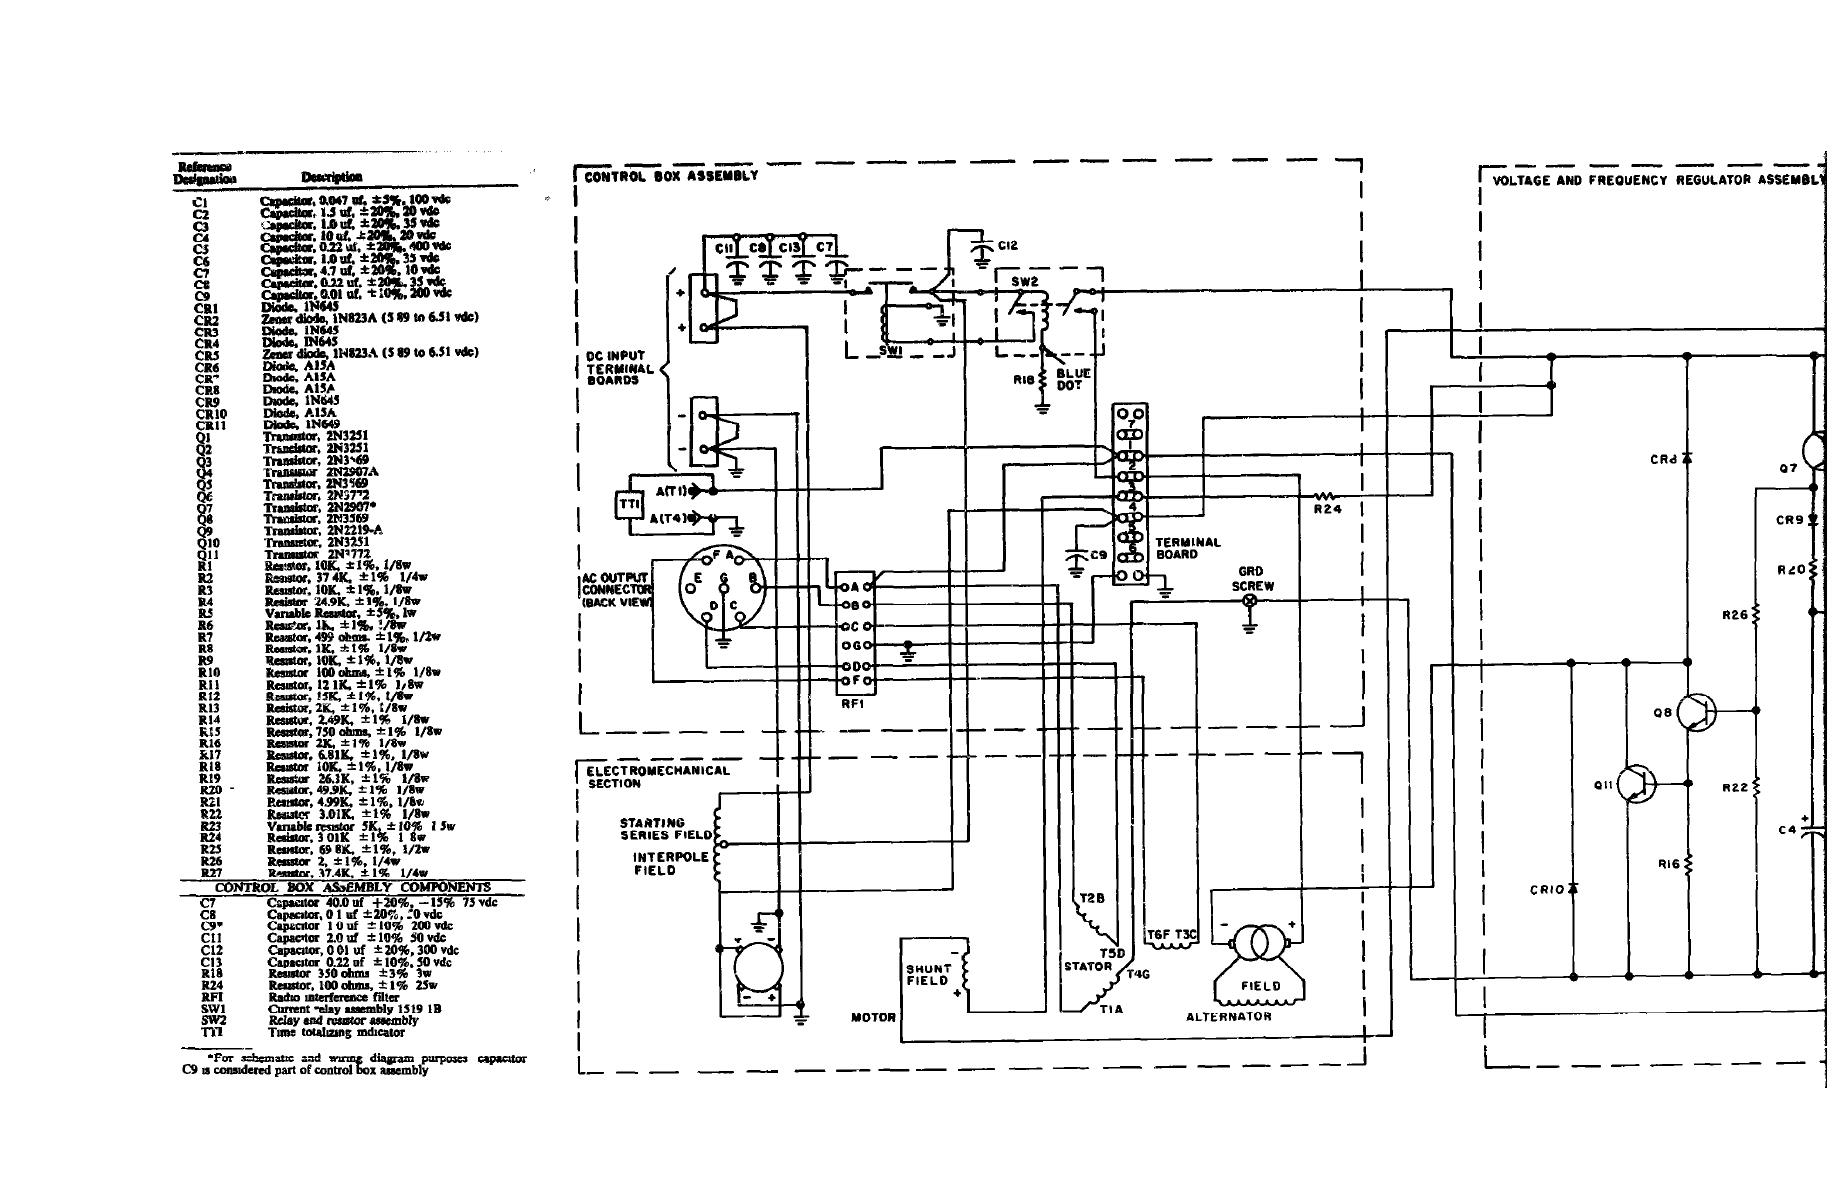 TM 11 6125 256 340098 further Honda Ex5500 Fuel Tank Diagram as well Honda Gxv340 Parts Diagram further Ac Motor Parts Diagram besides 100 Honda Engine Gcv160 Carburetor Diagram Toro Honda Gcv16. on eu2000i wiring diagram